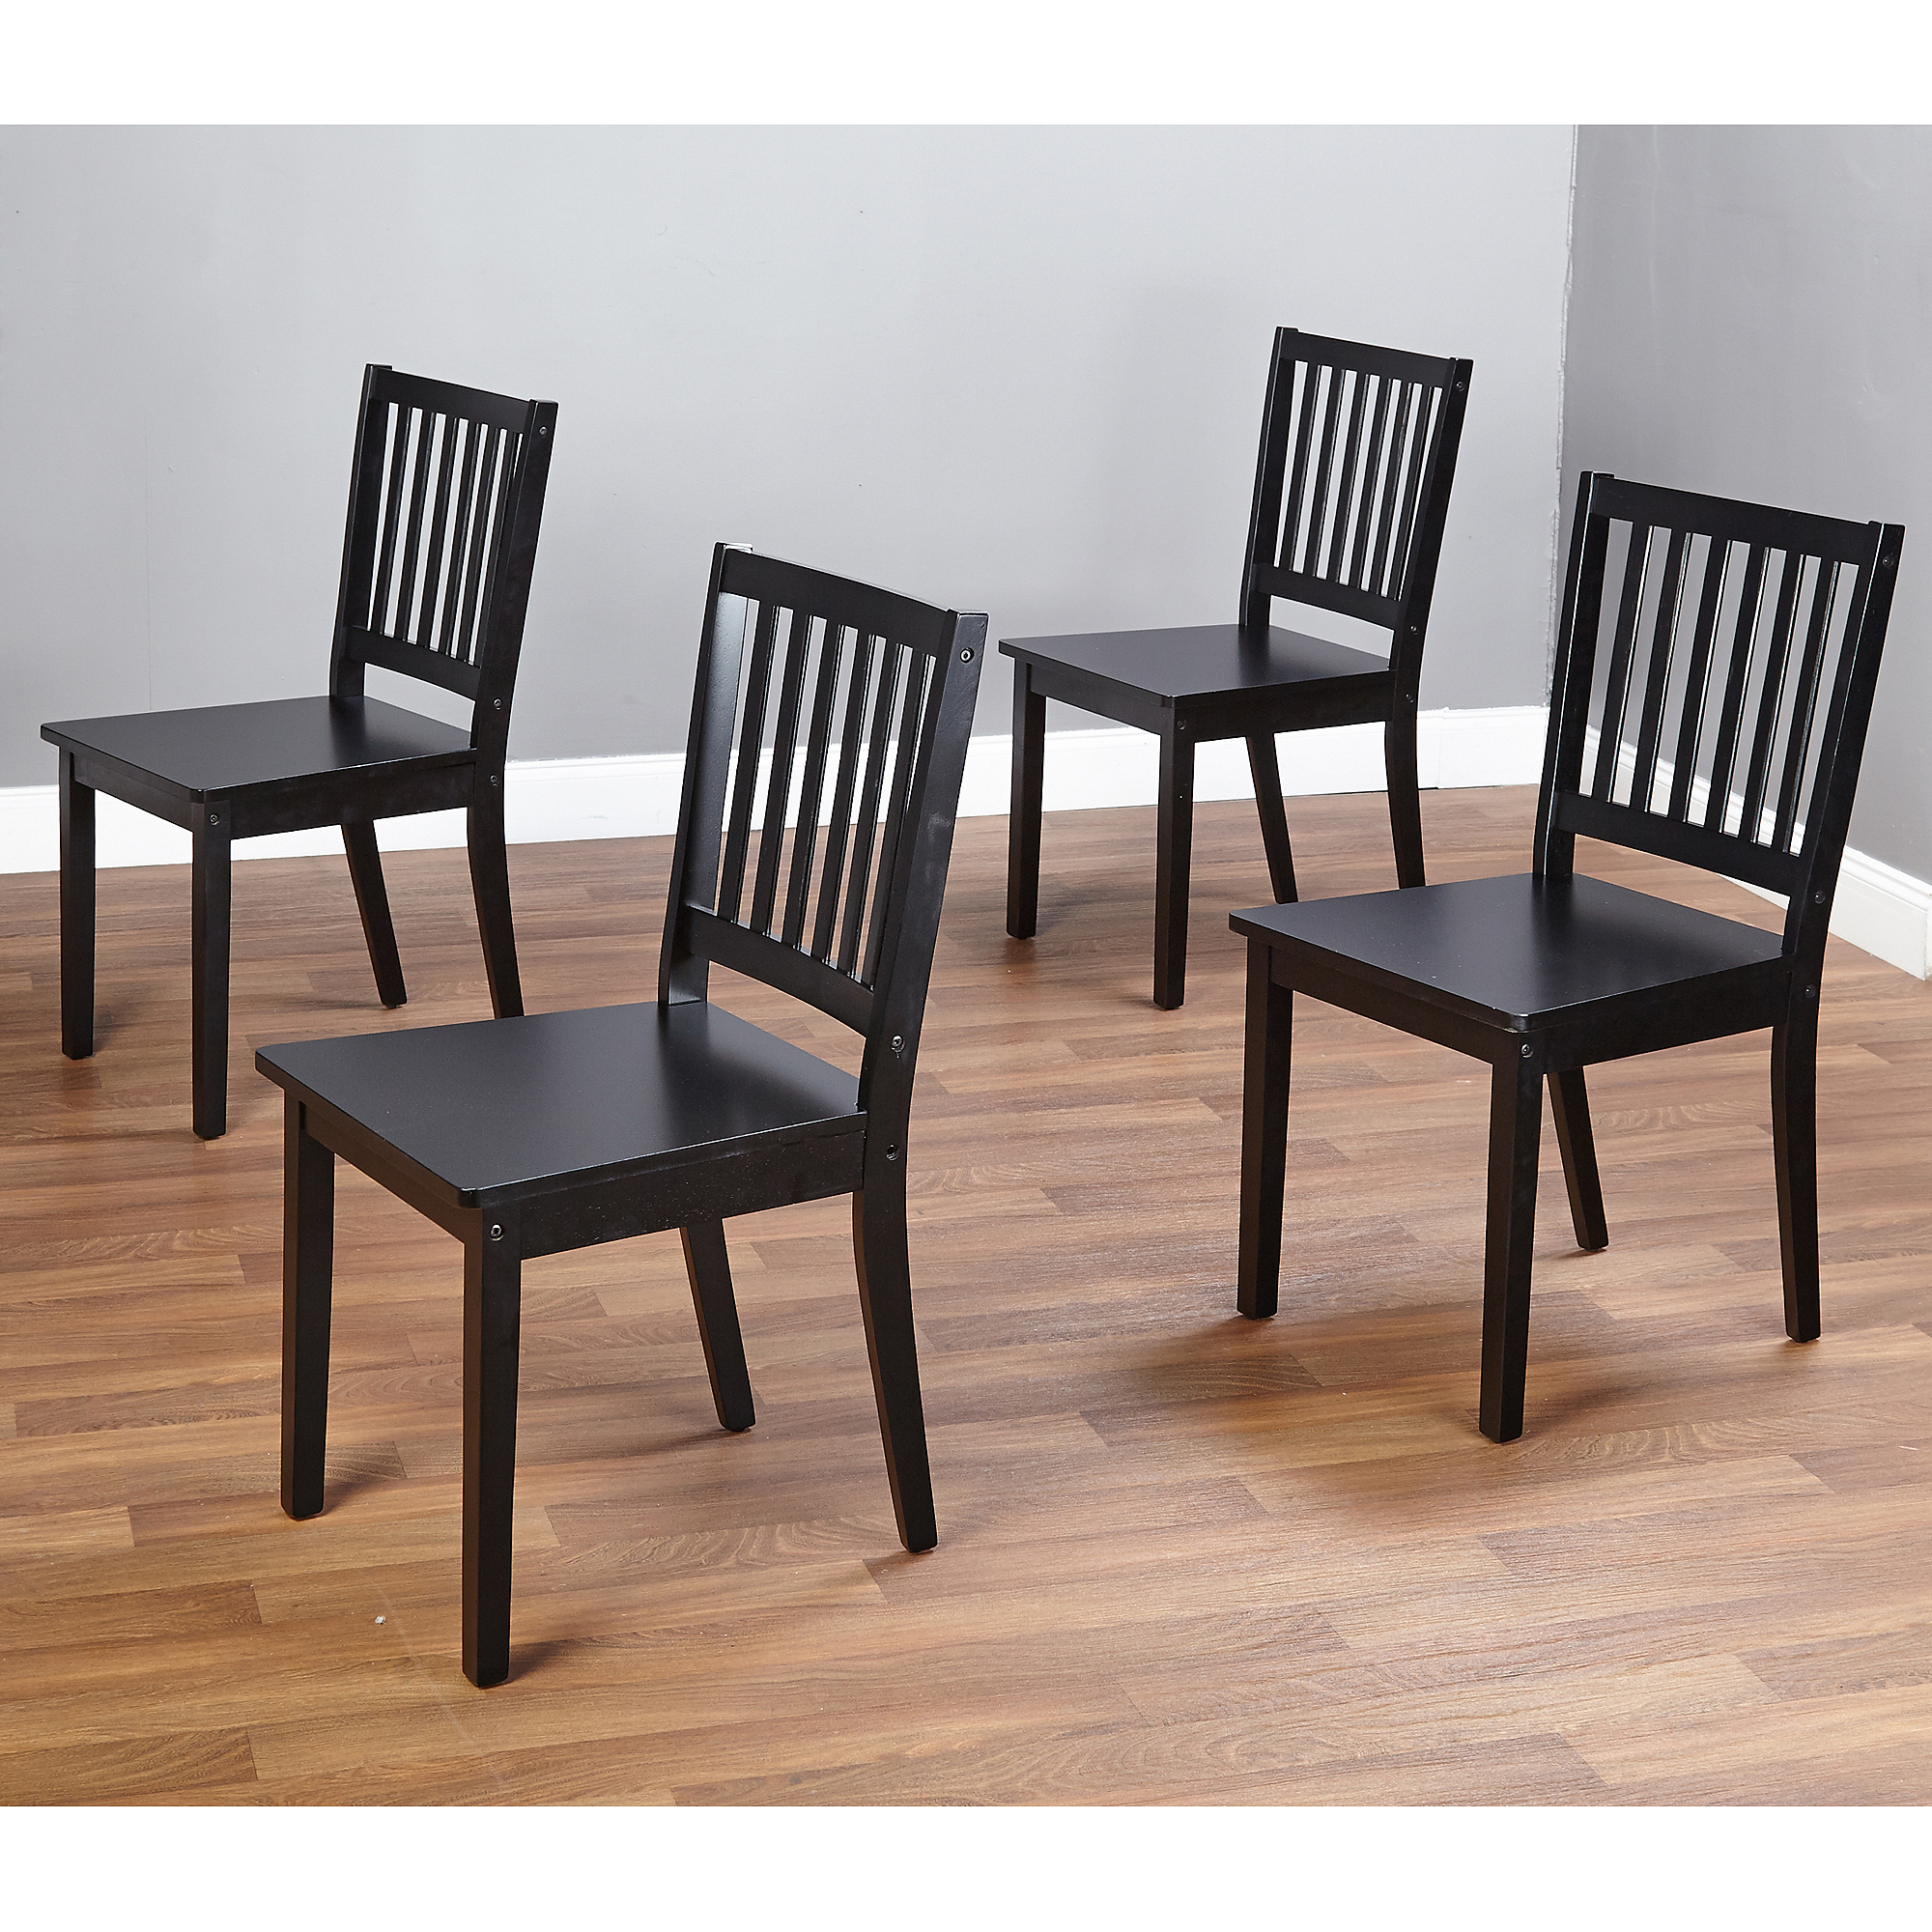 shaker dining chairs set of 4 espresso walmartcom - Dining Chairs Set Of 4